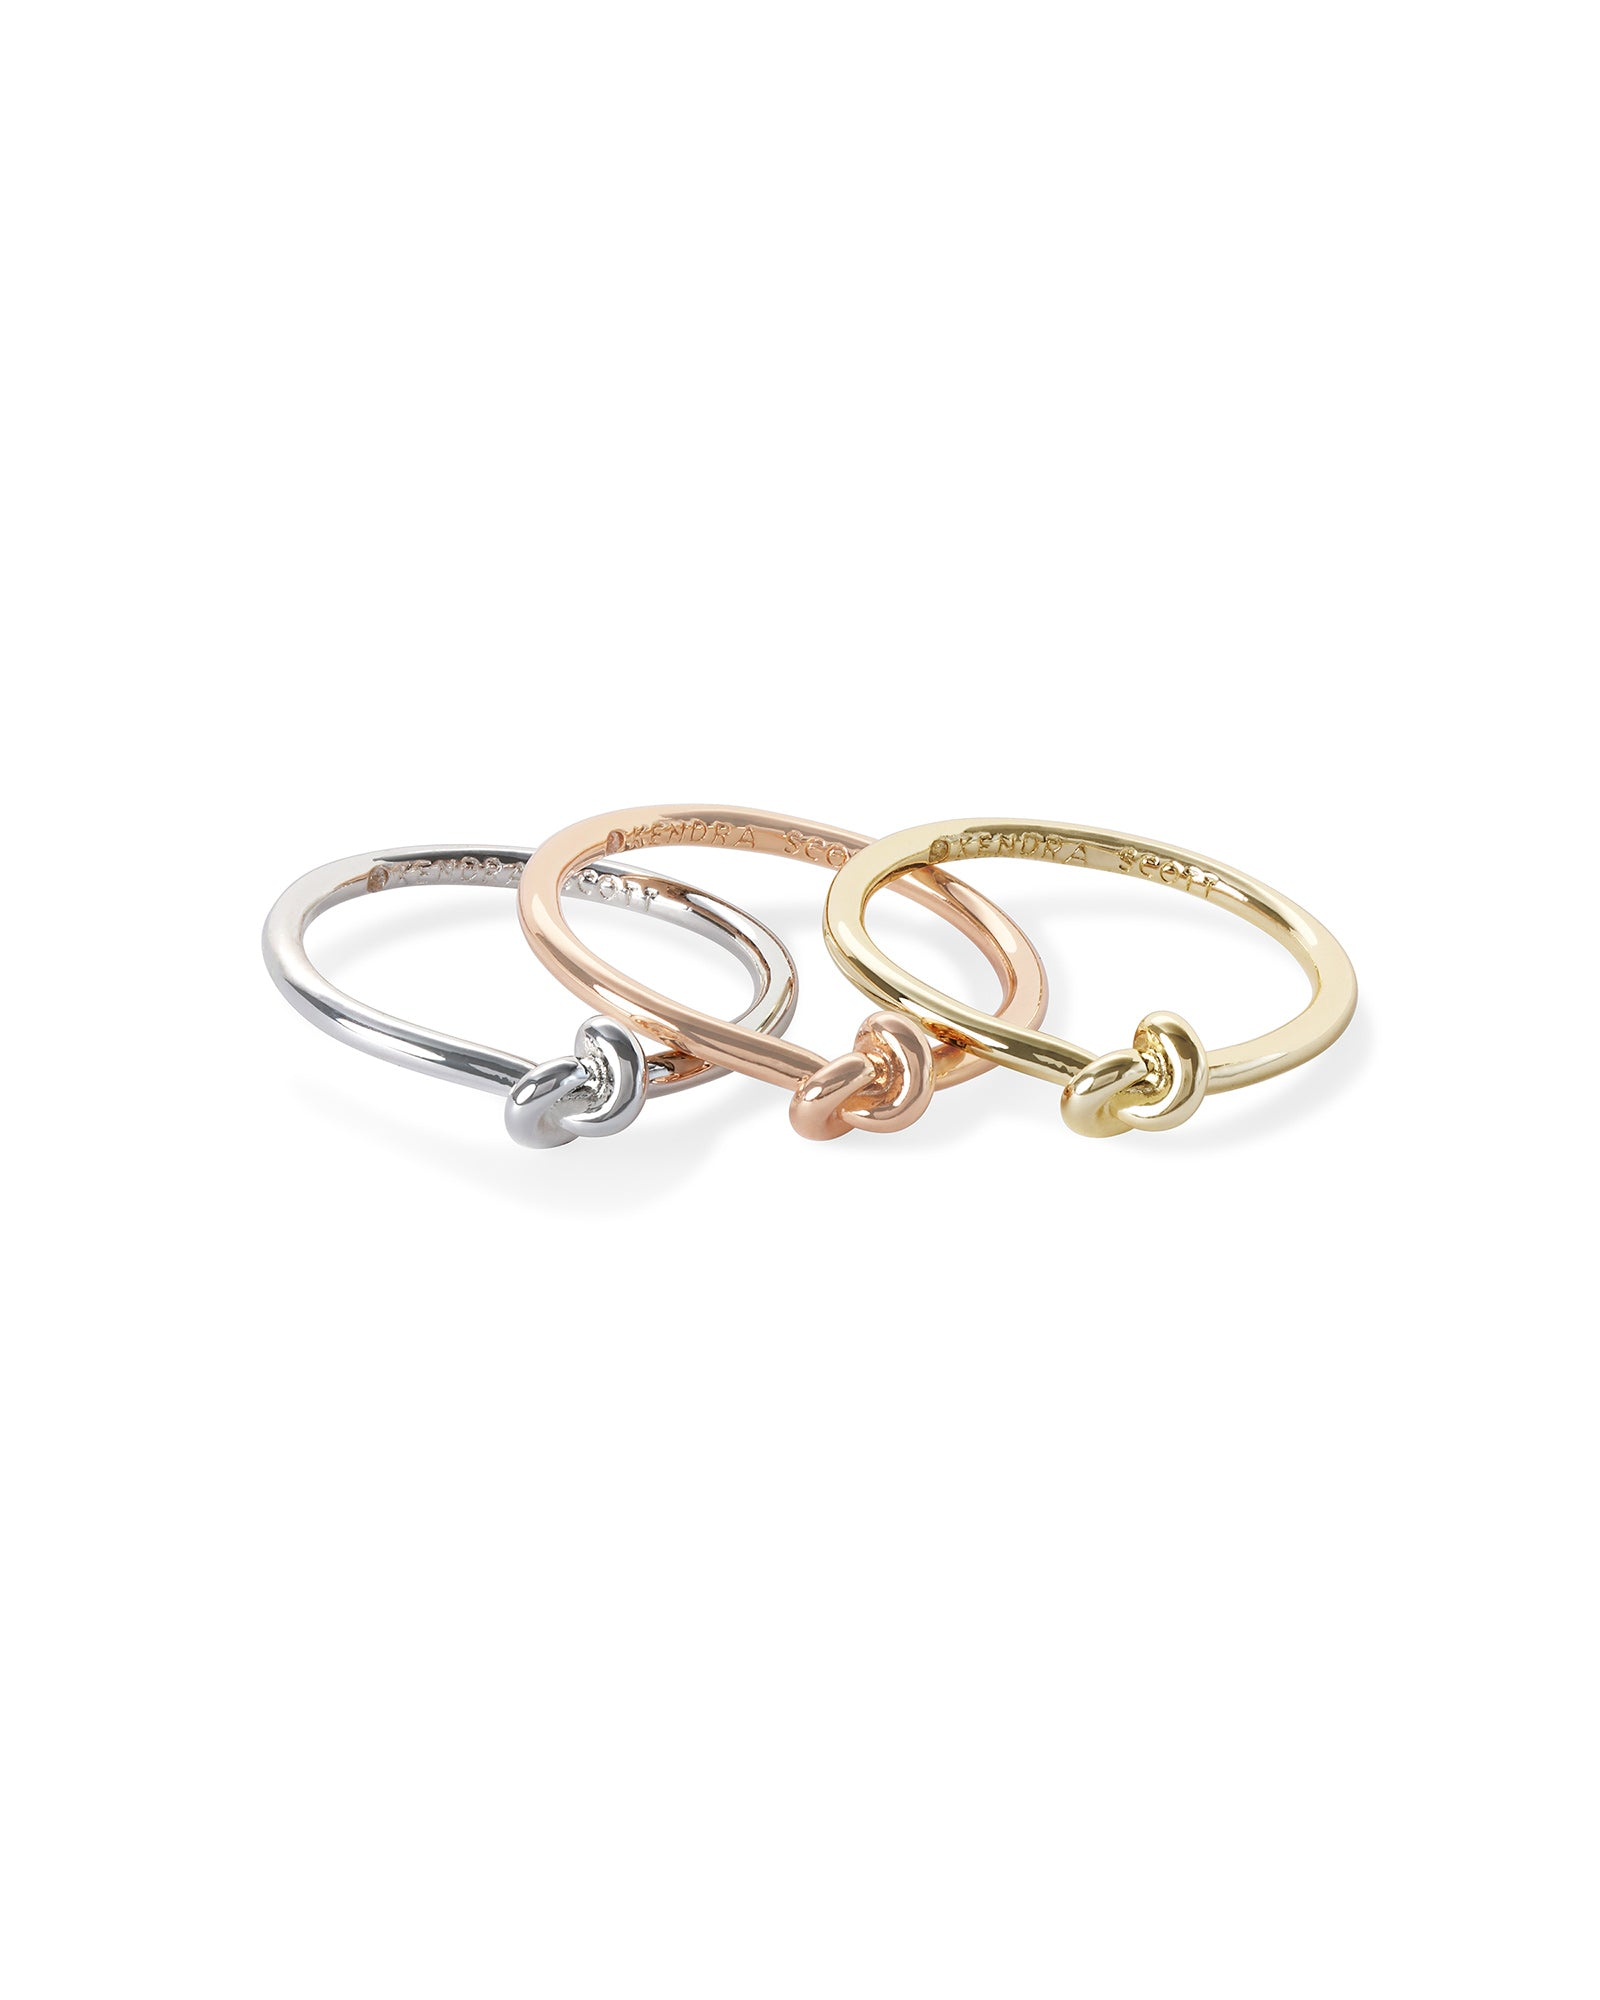 Presleigh Ring Set Mixed Metal